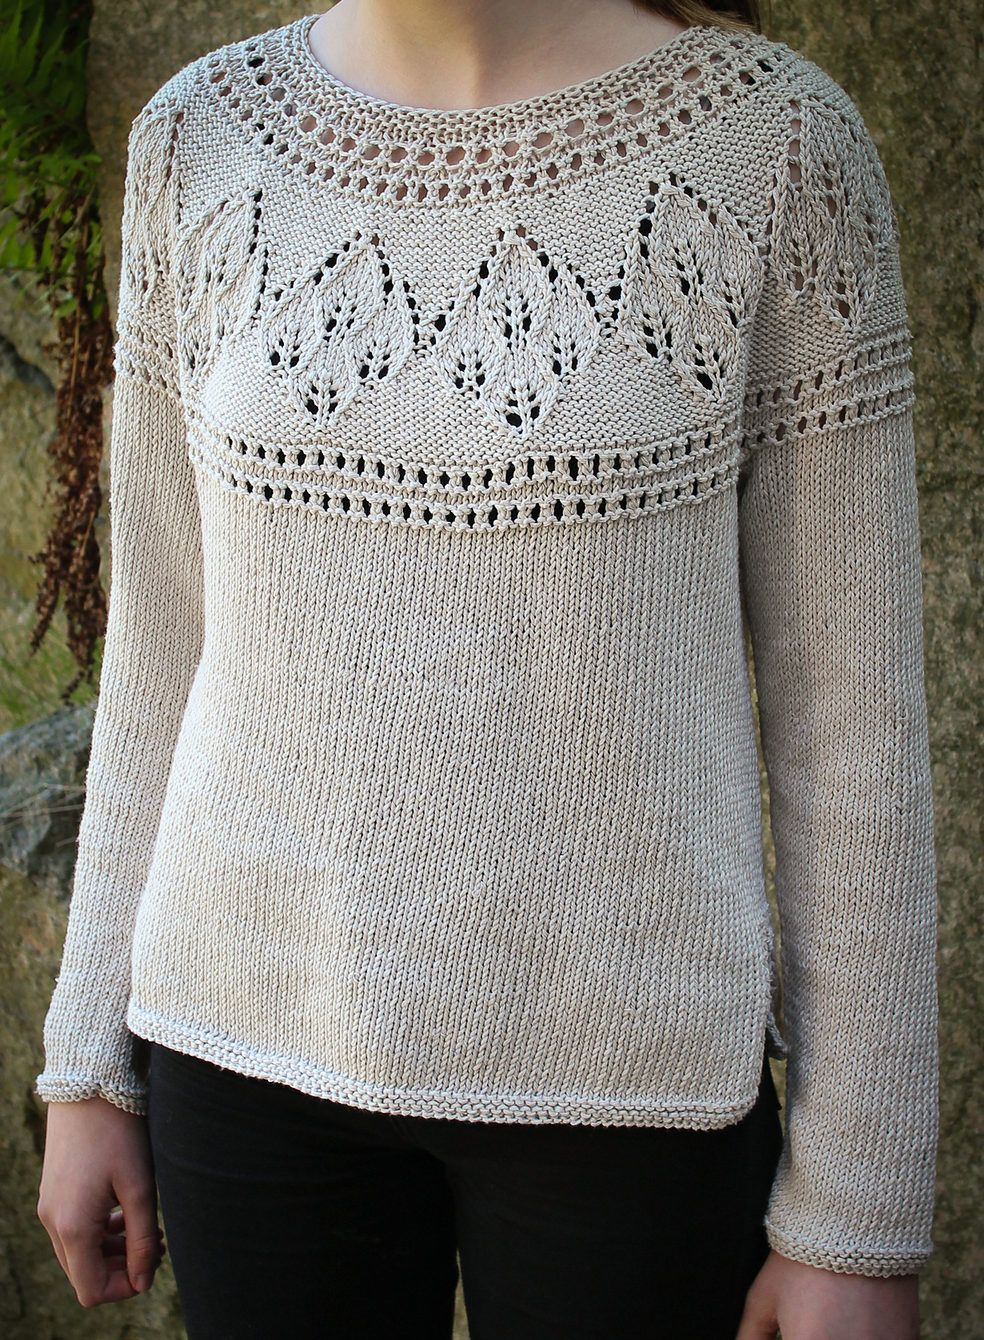 5136c8948b2e56 Knitting Pattern for Agnes Round Yoke Sweater - This long sleeved pullover  features leaf lace on the yoke. And it s seamless! Sizes S (M